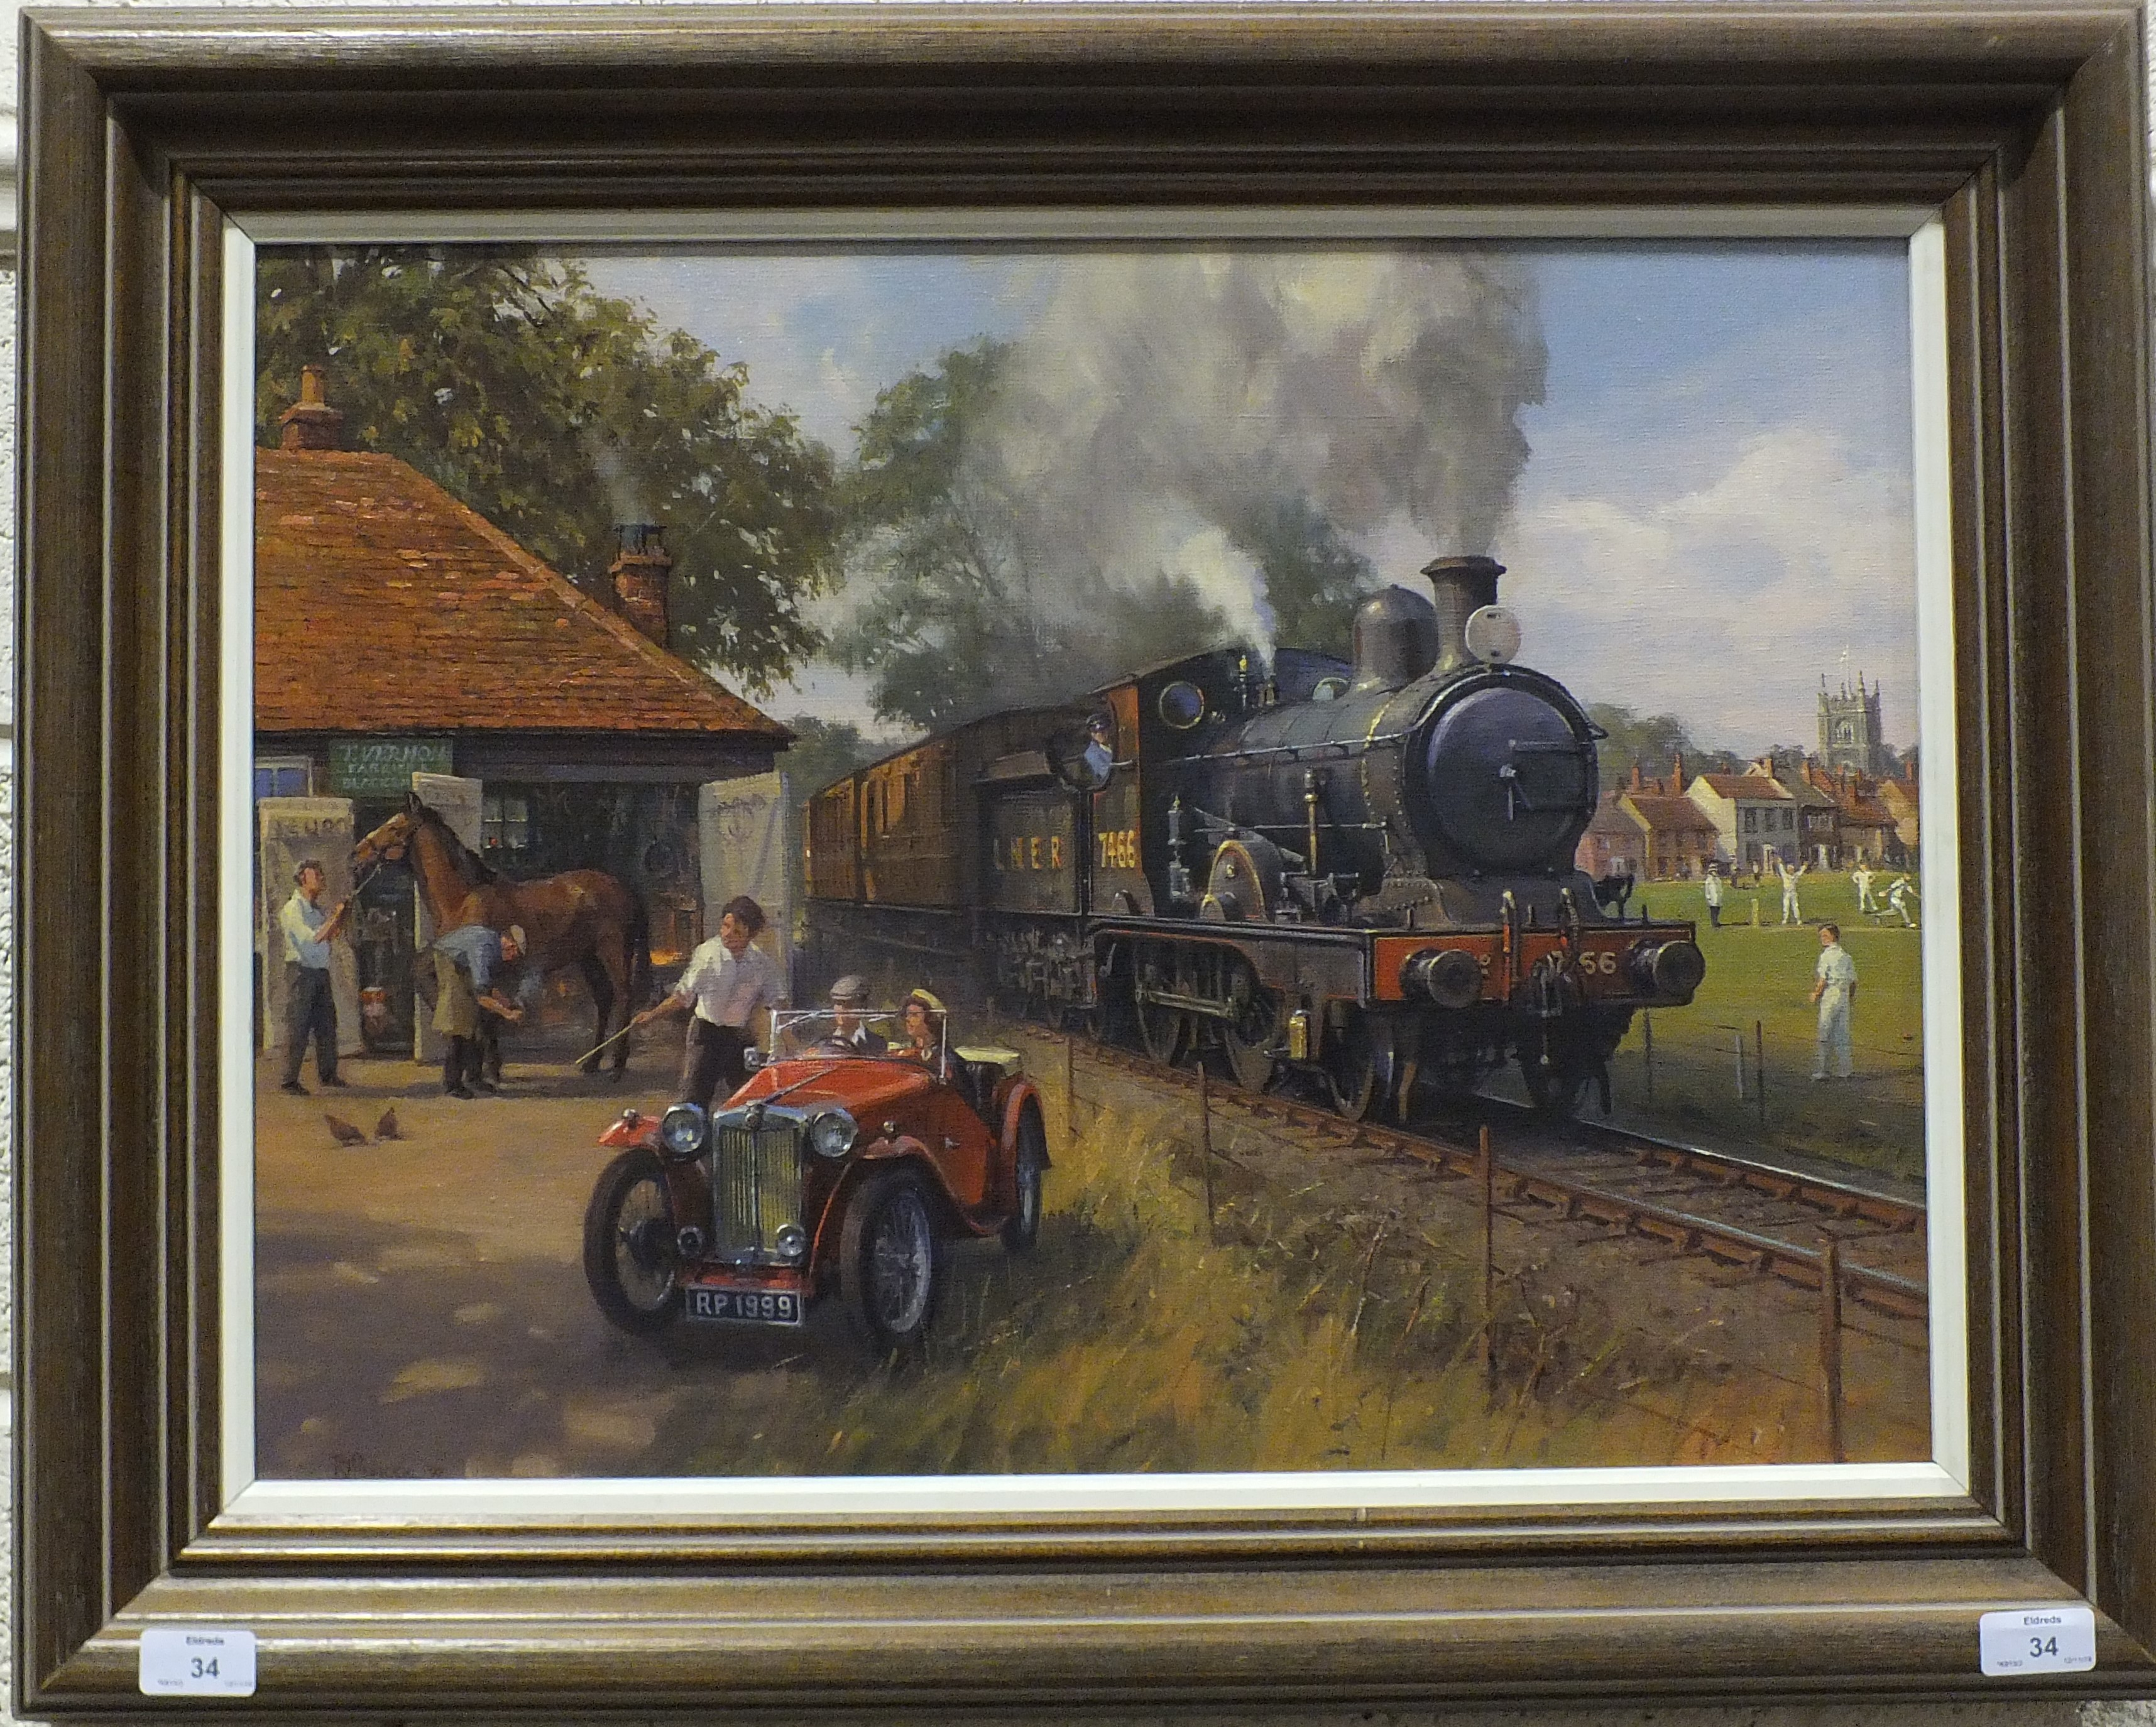 Lot 34 - R Pinnock, 'LNER locomotive with figures in an MG sports car in a blacksmith's yard, with village